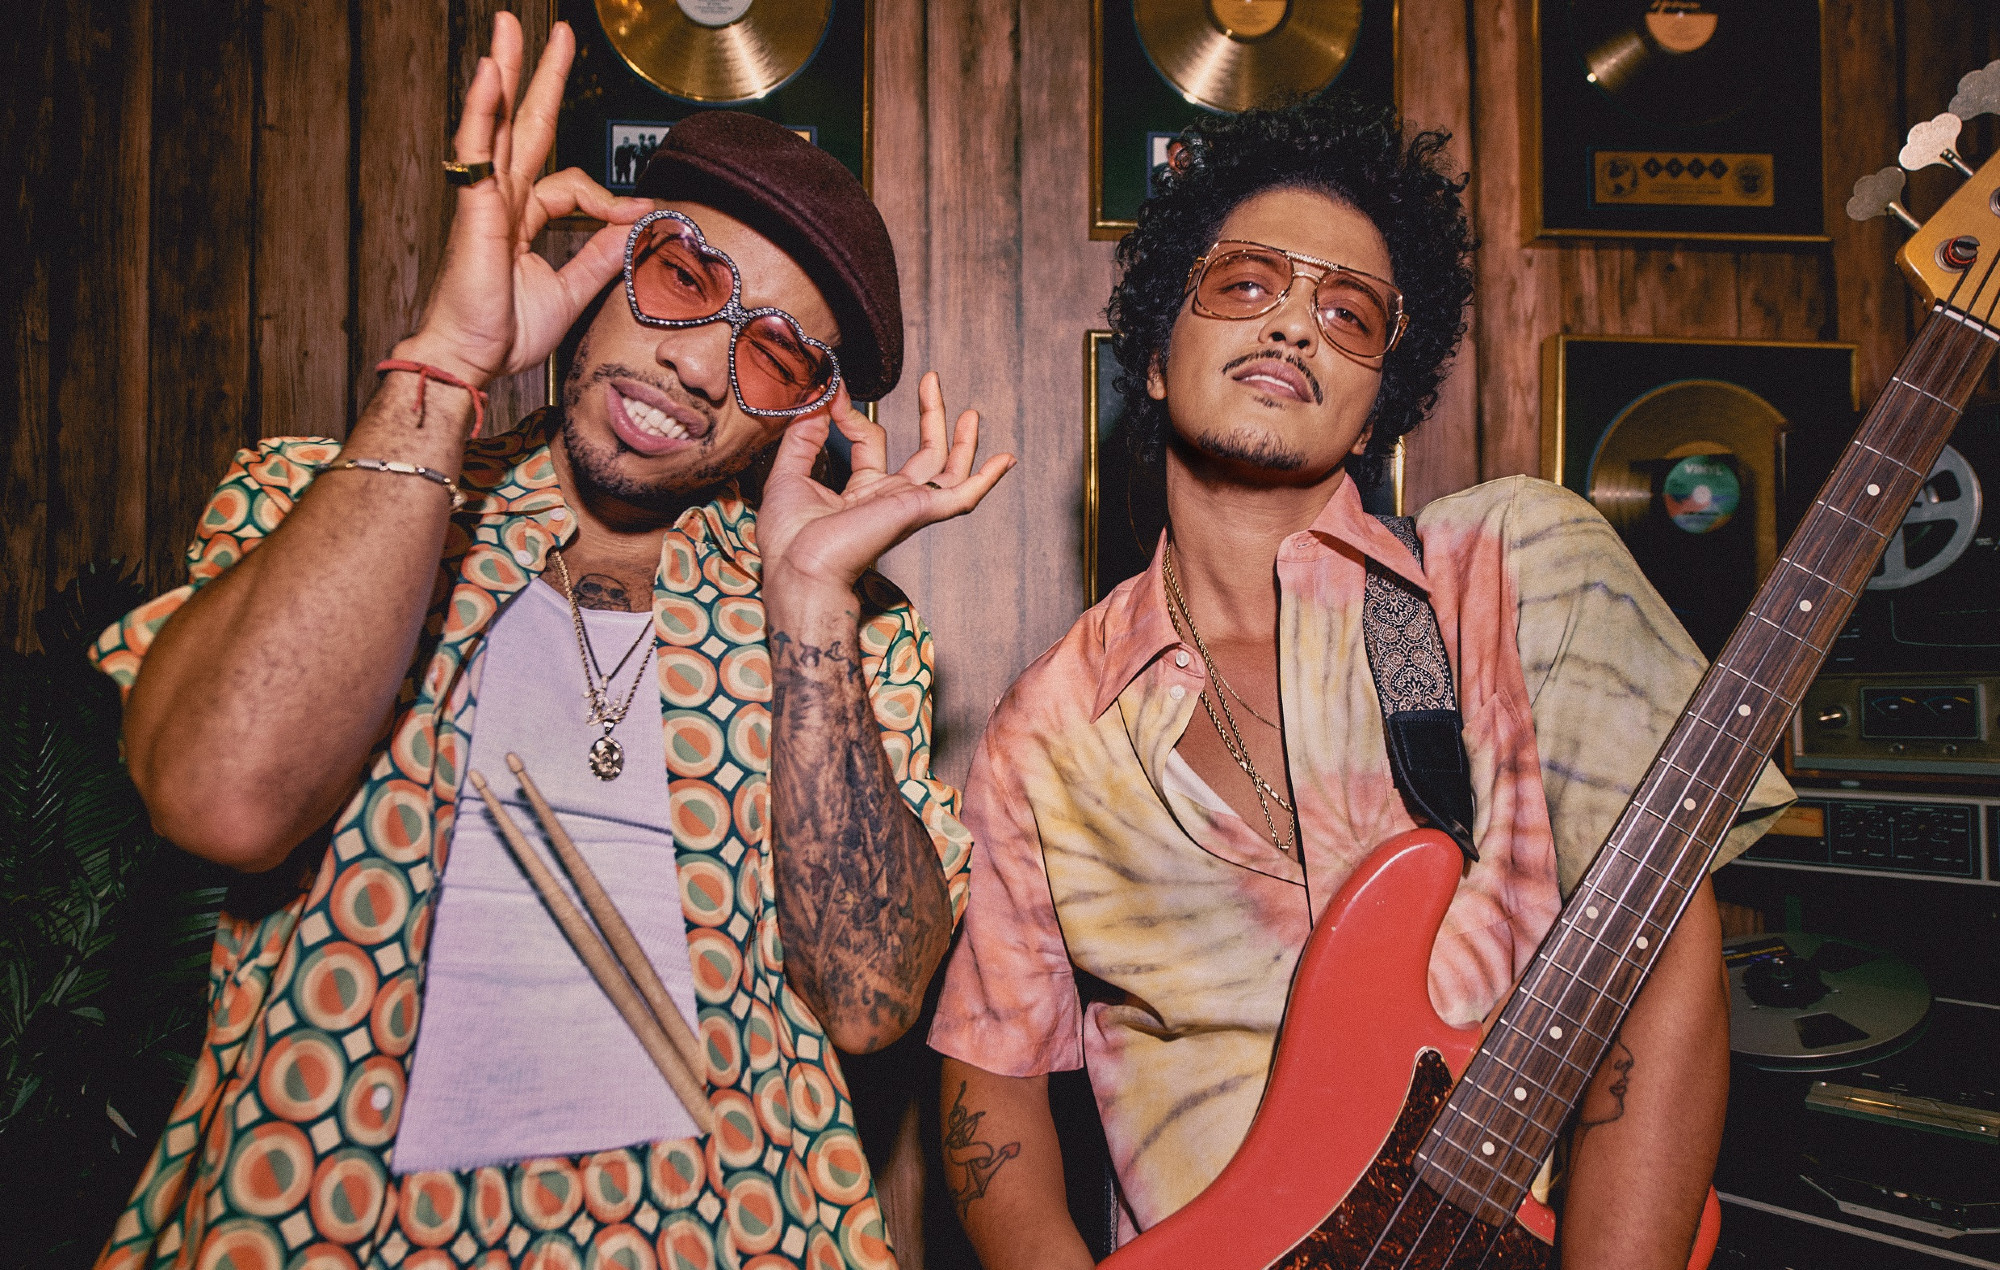 Bruno Mars and Anderson. Paak's Silk Sonic to perform at 2021 Grammys